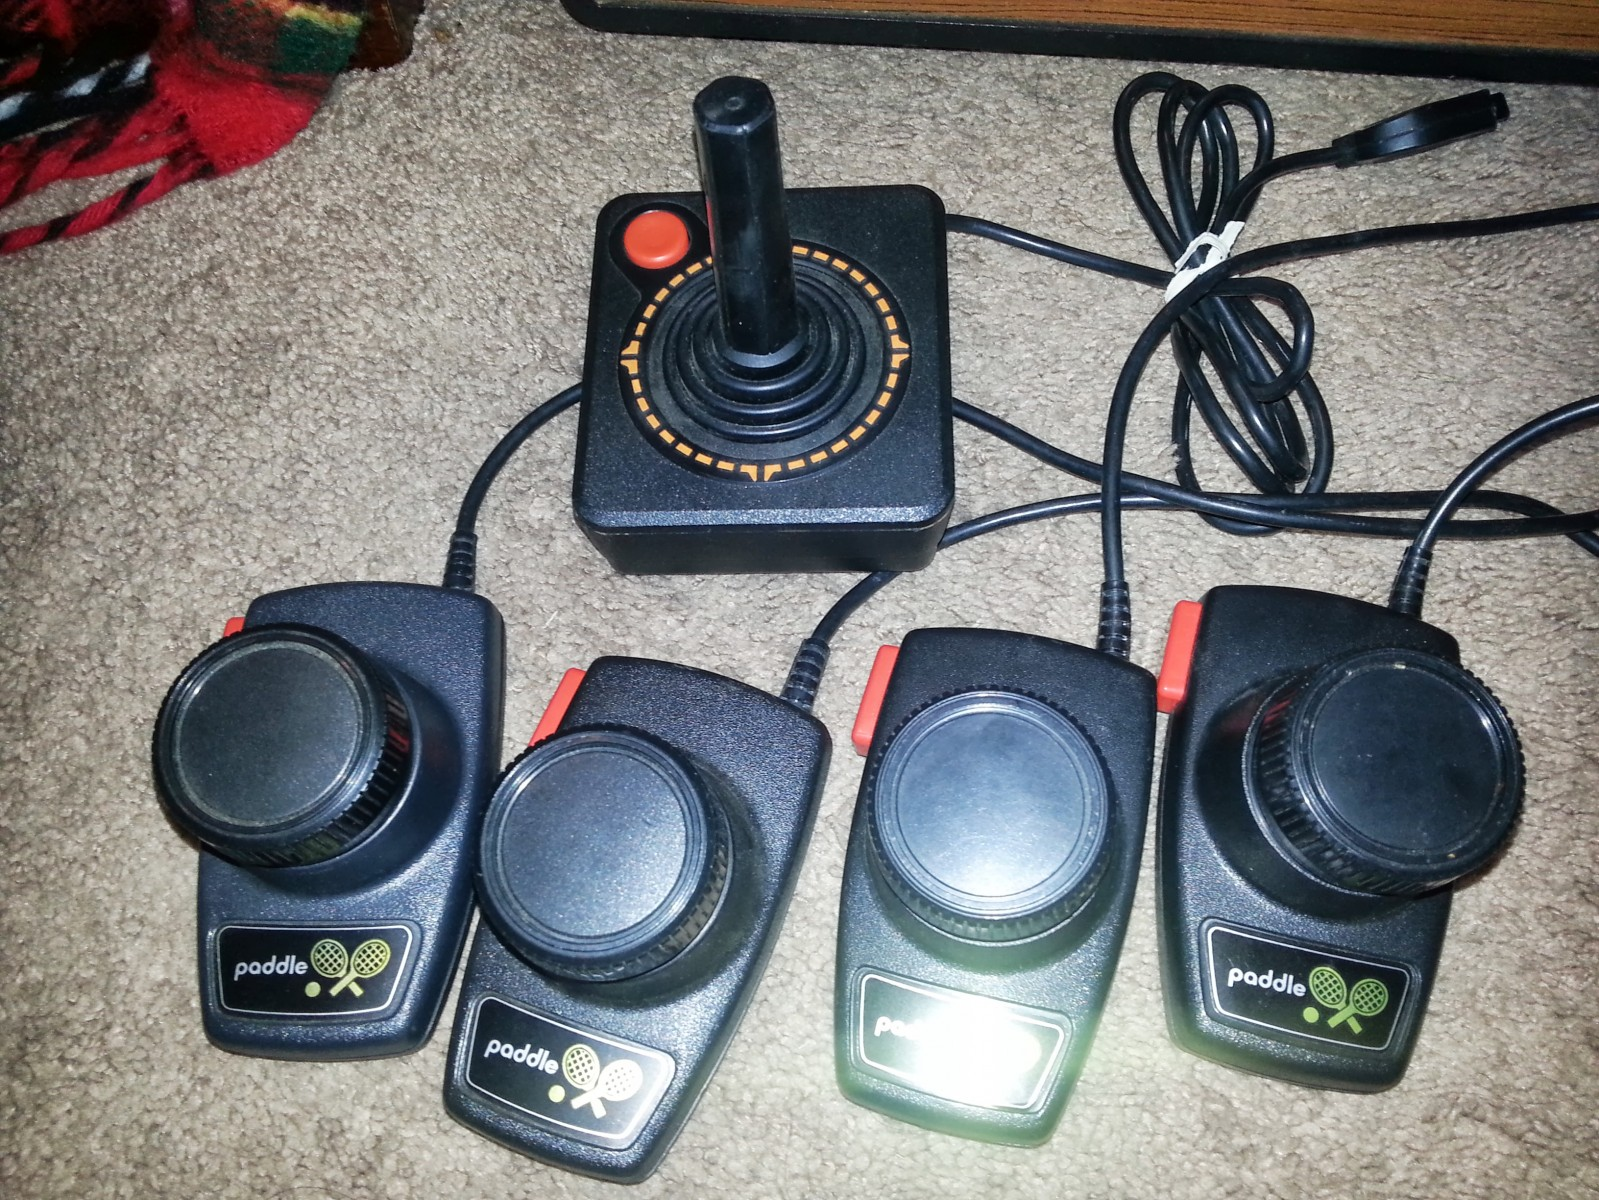 Controllers (July 9, 2013)